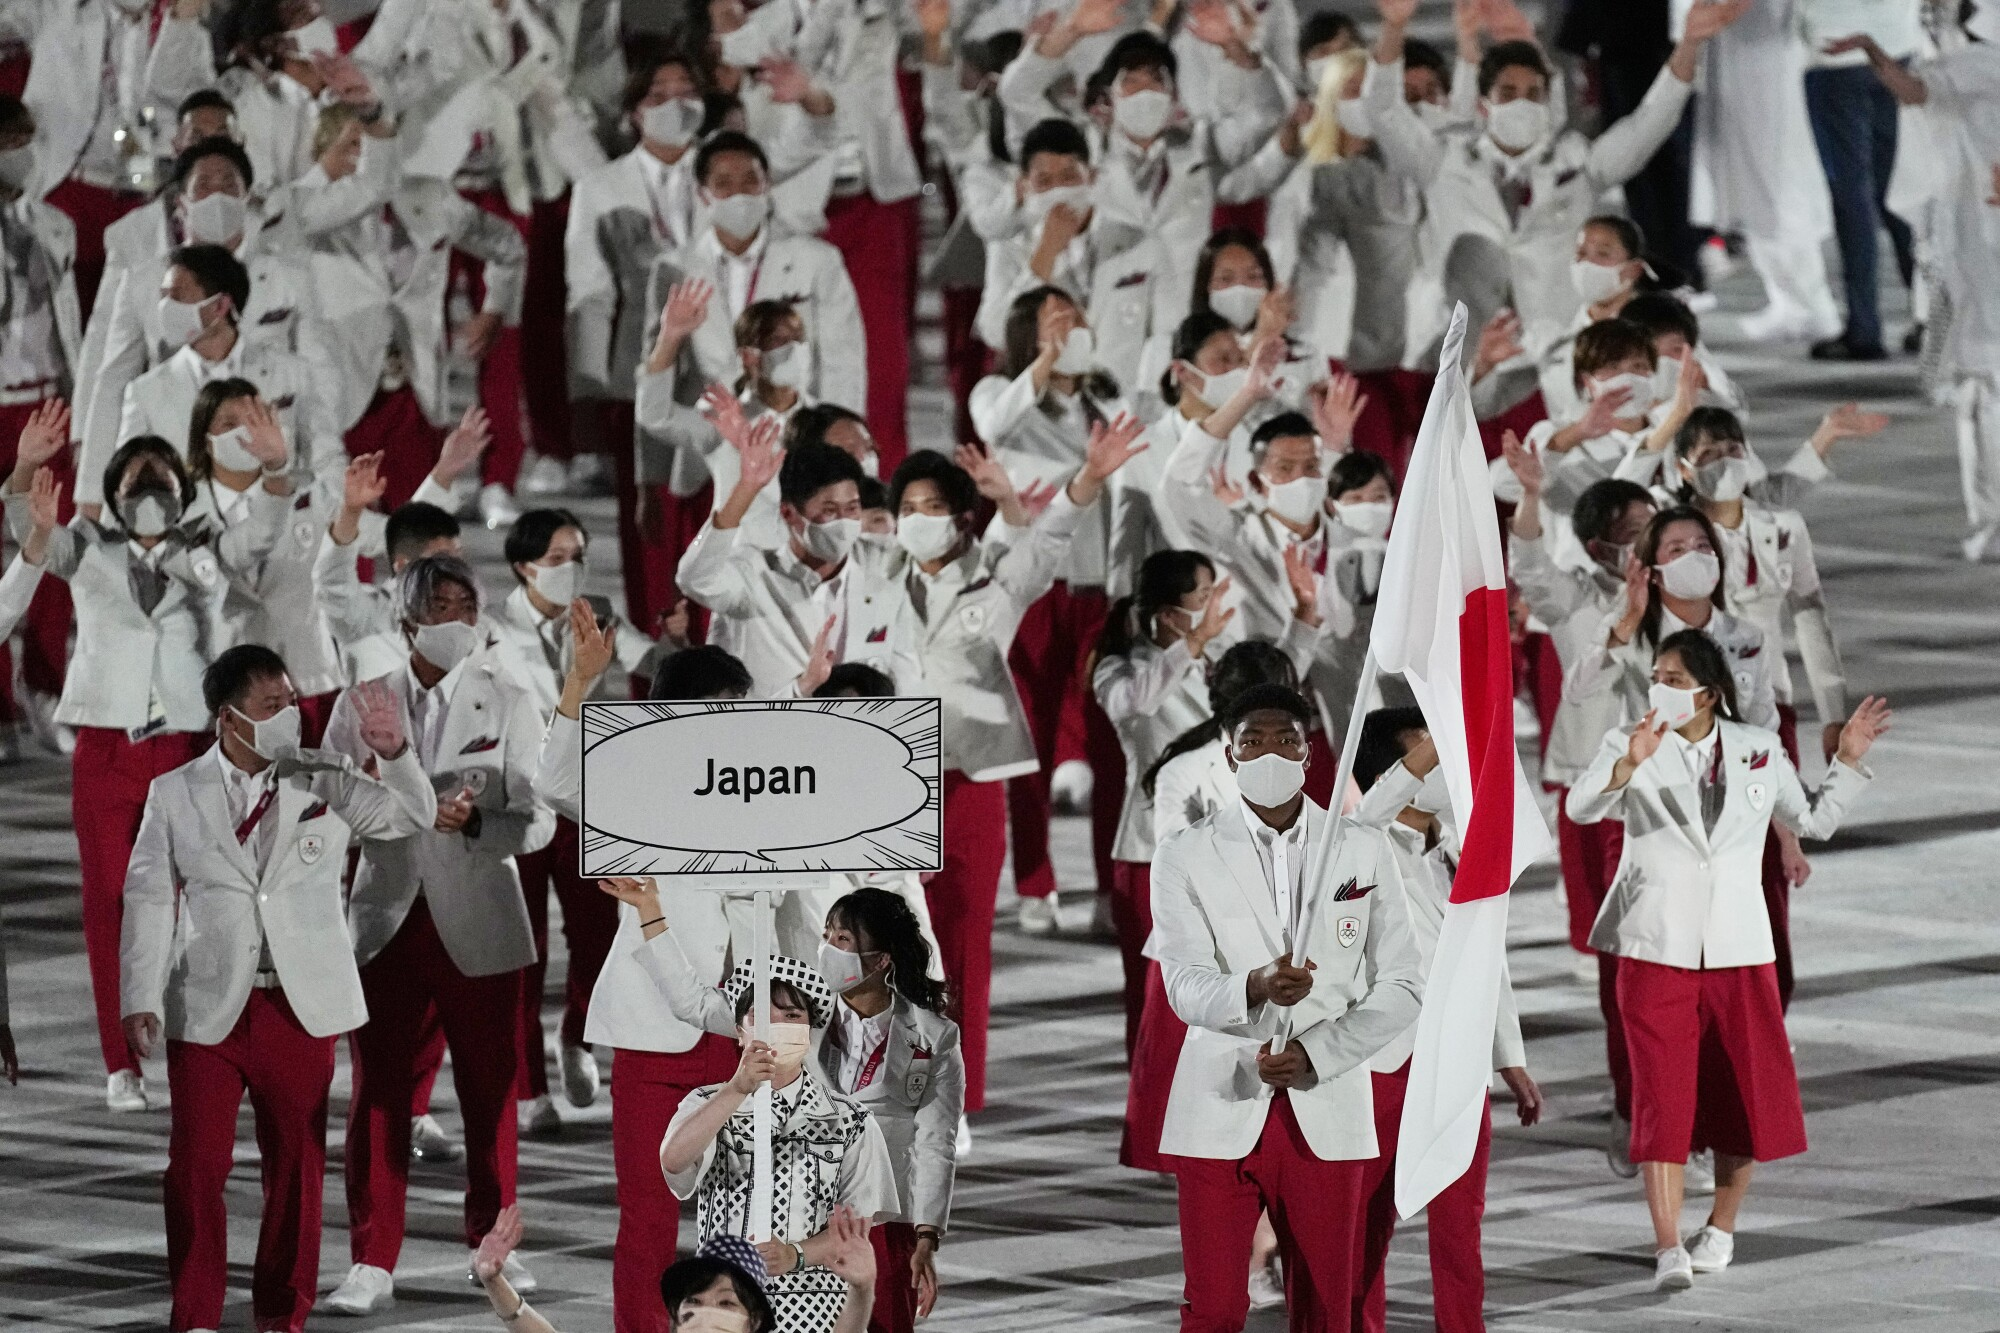 Yui Susaki and Rui Hachimura, of Japan, carry their country's flag during the opening ceremony